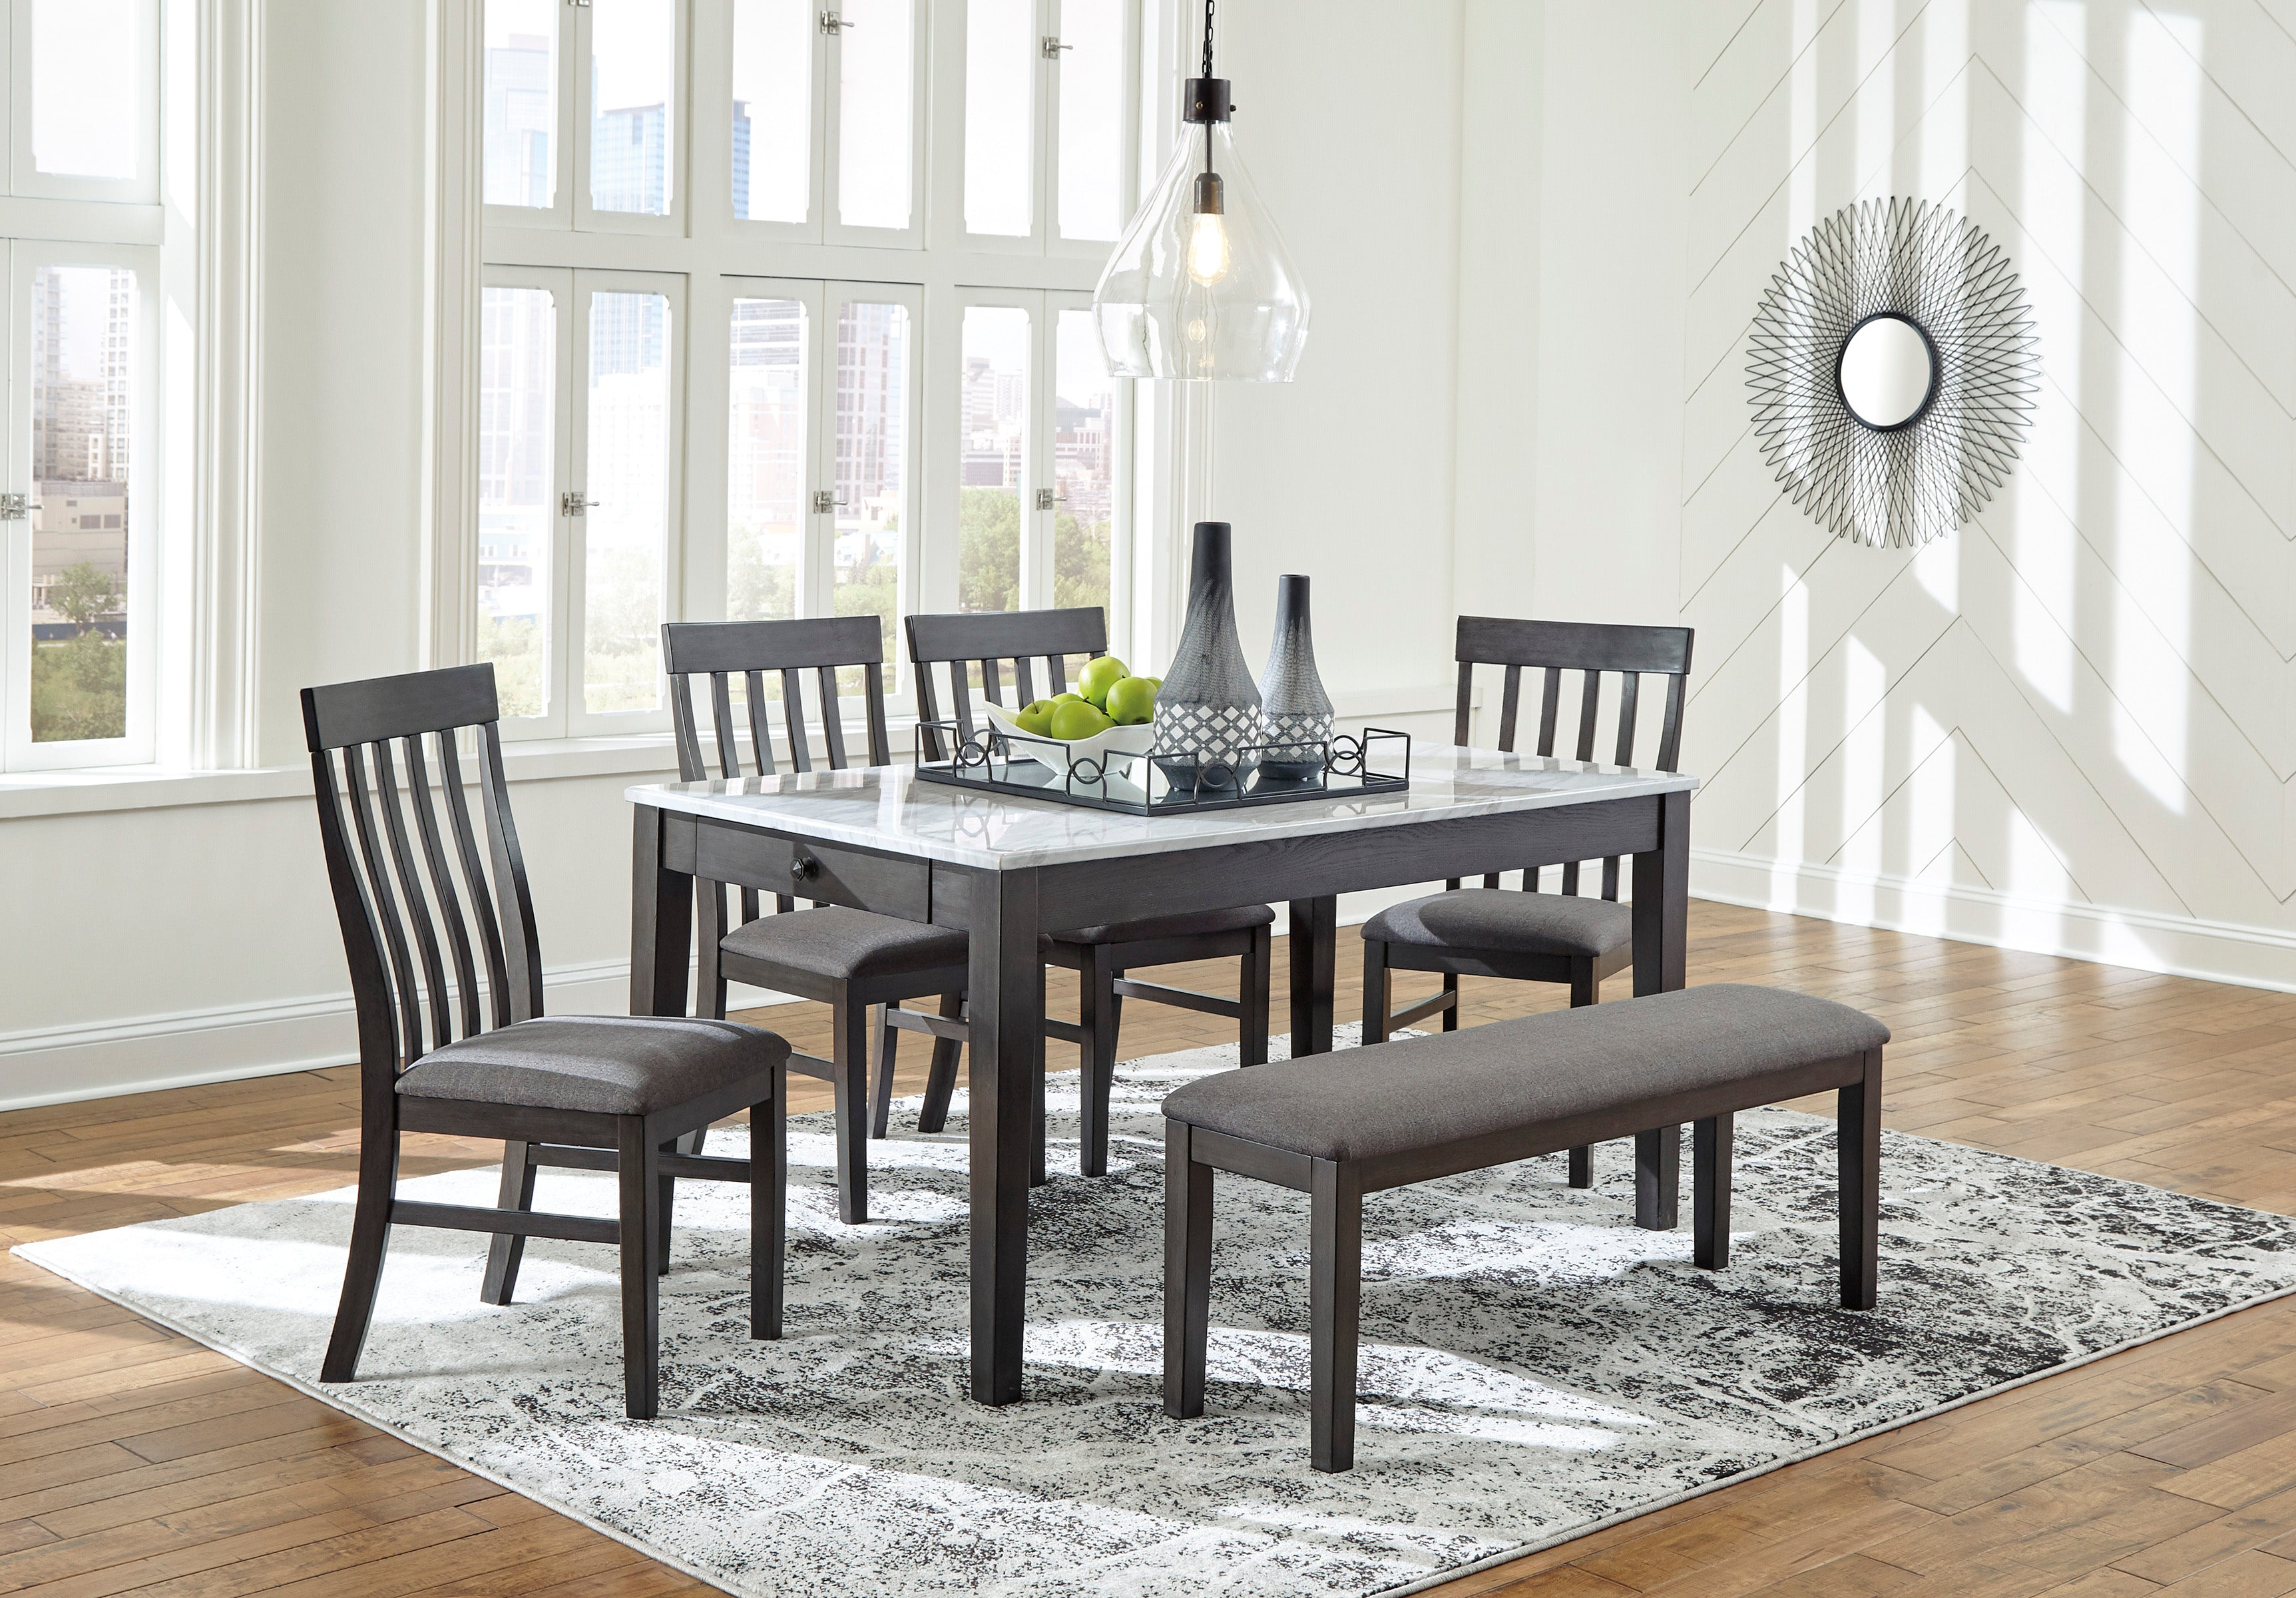 Picture of: Special Luvoni White Charcoal Dining Set From Ashley Luna Furniture